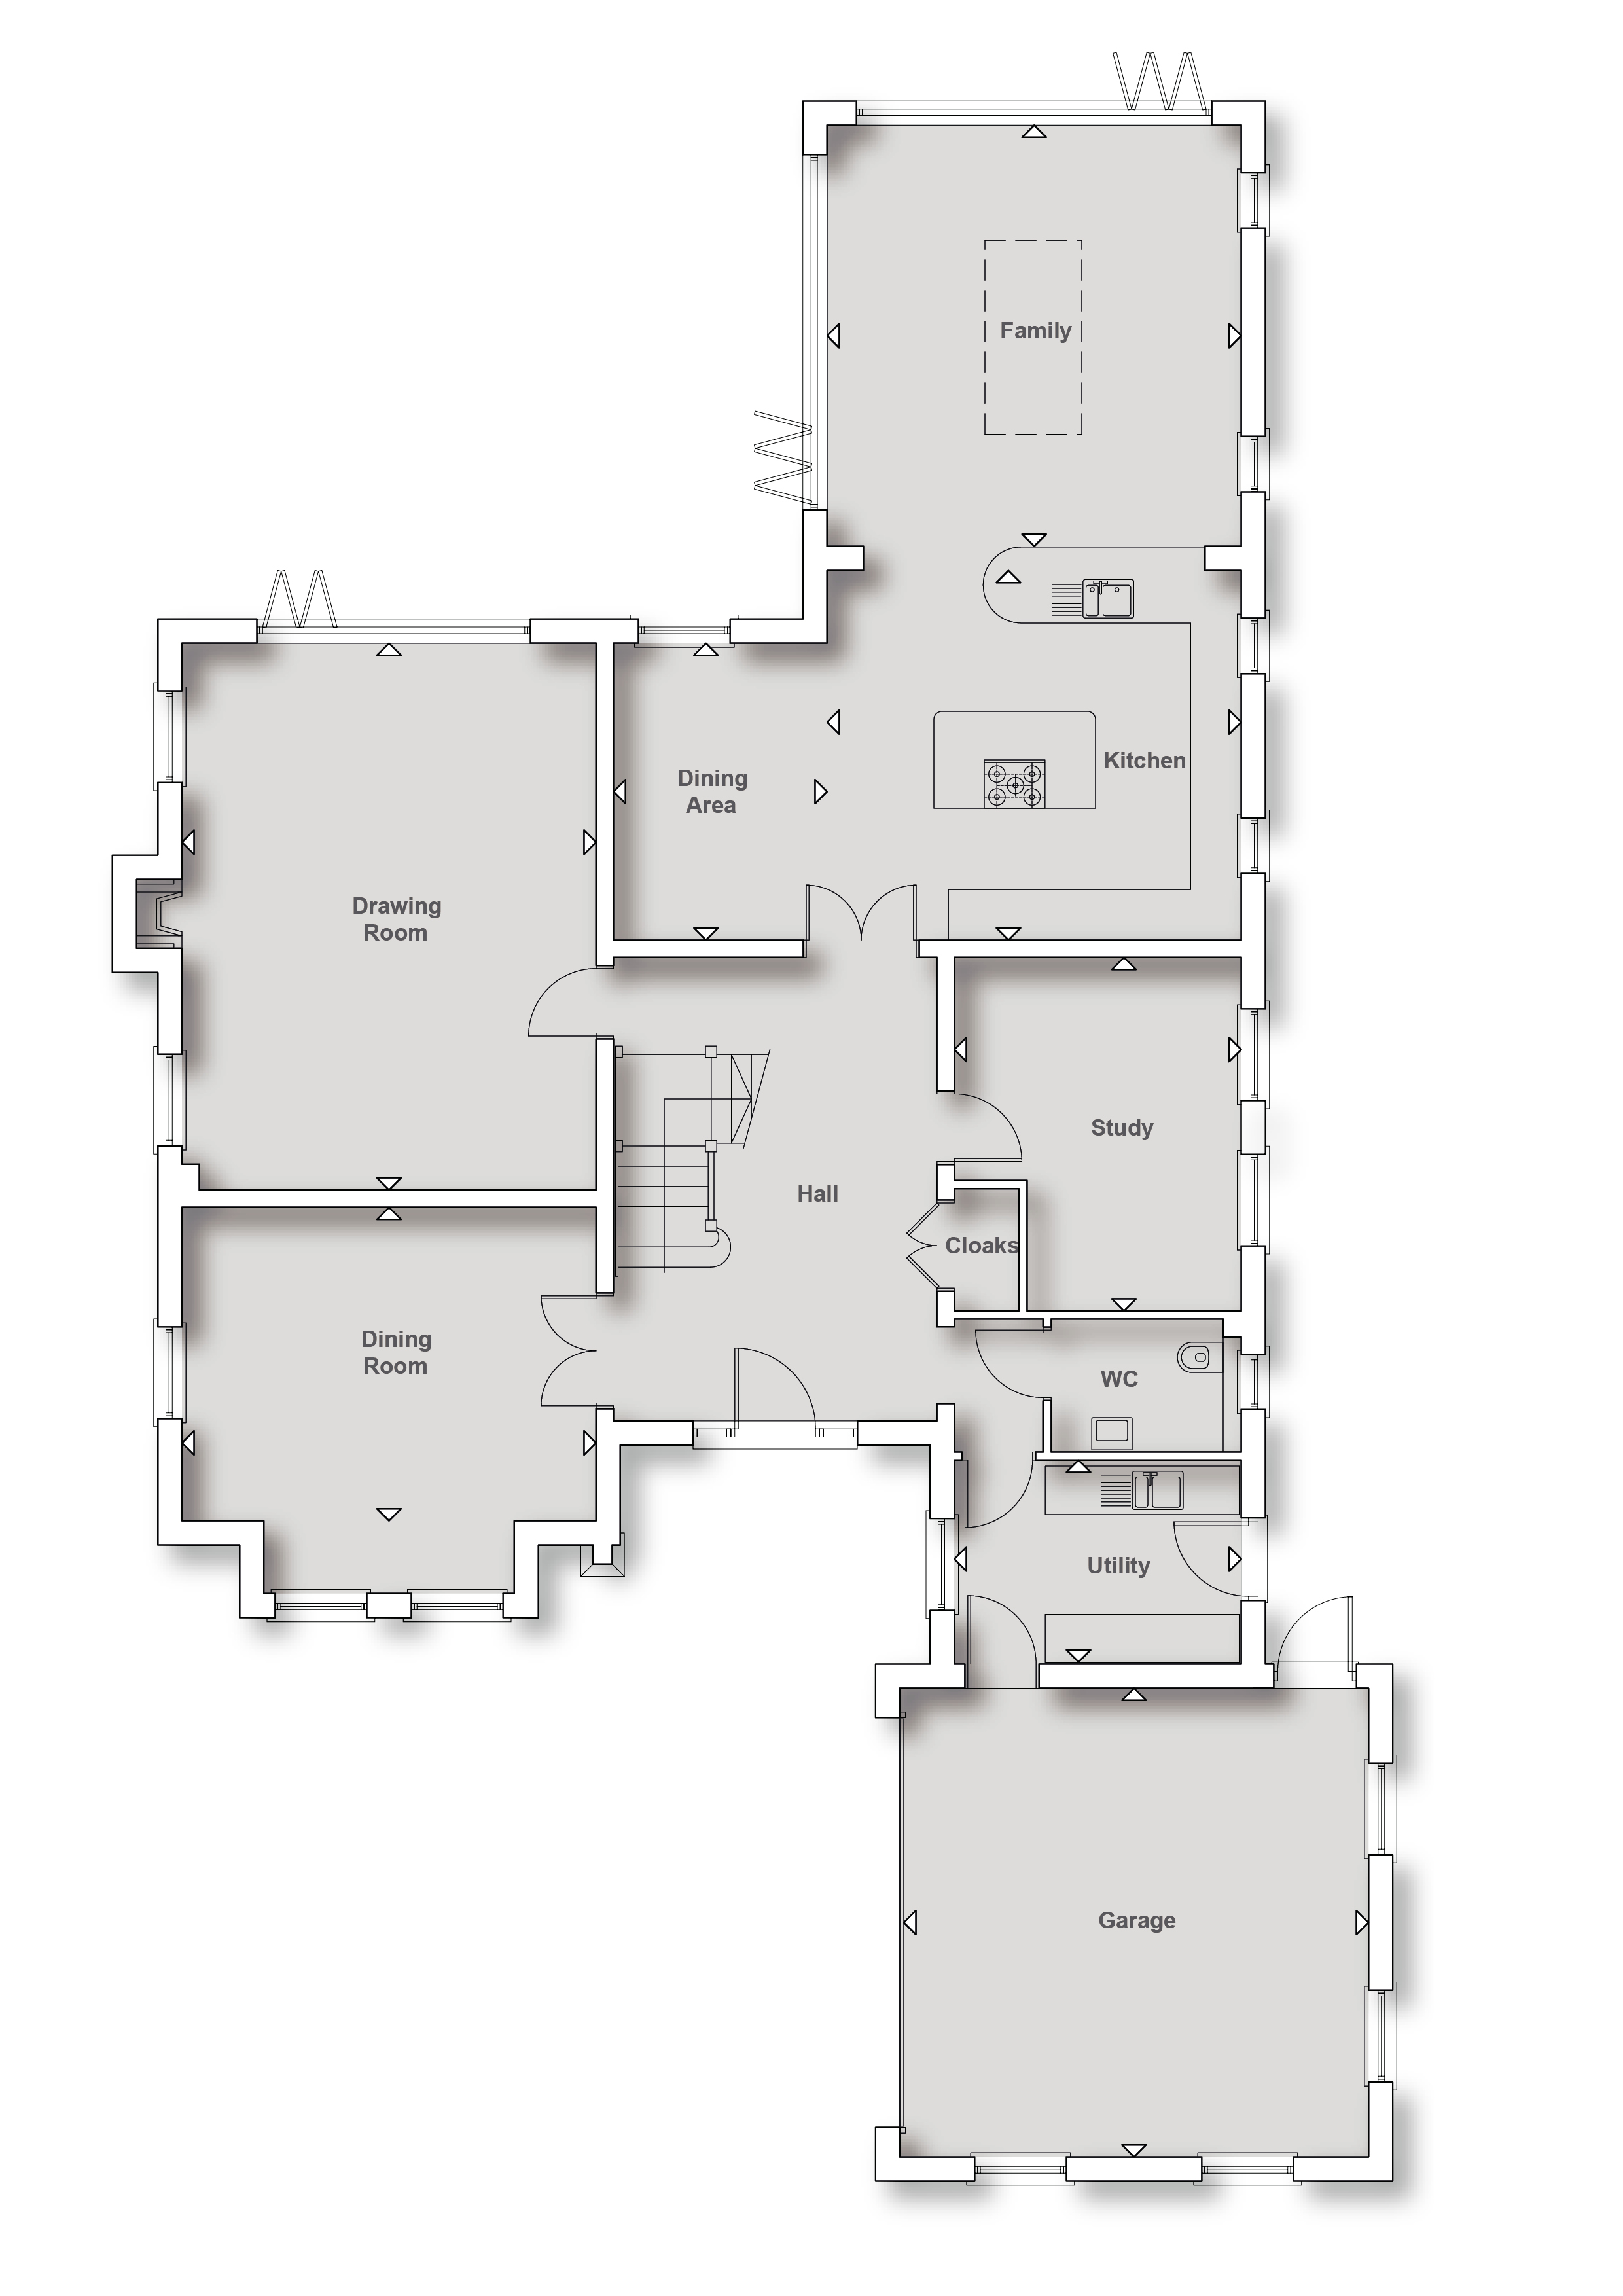 plot_2_ground_floor_plan